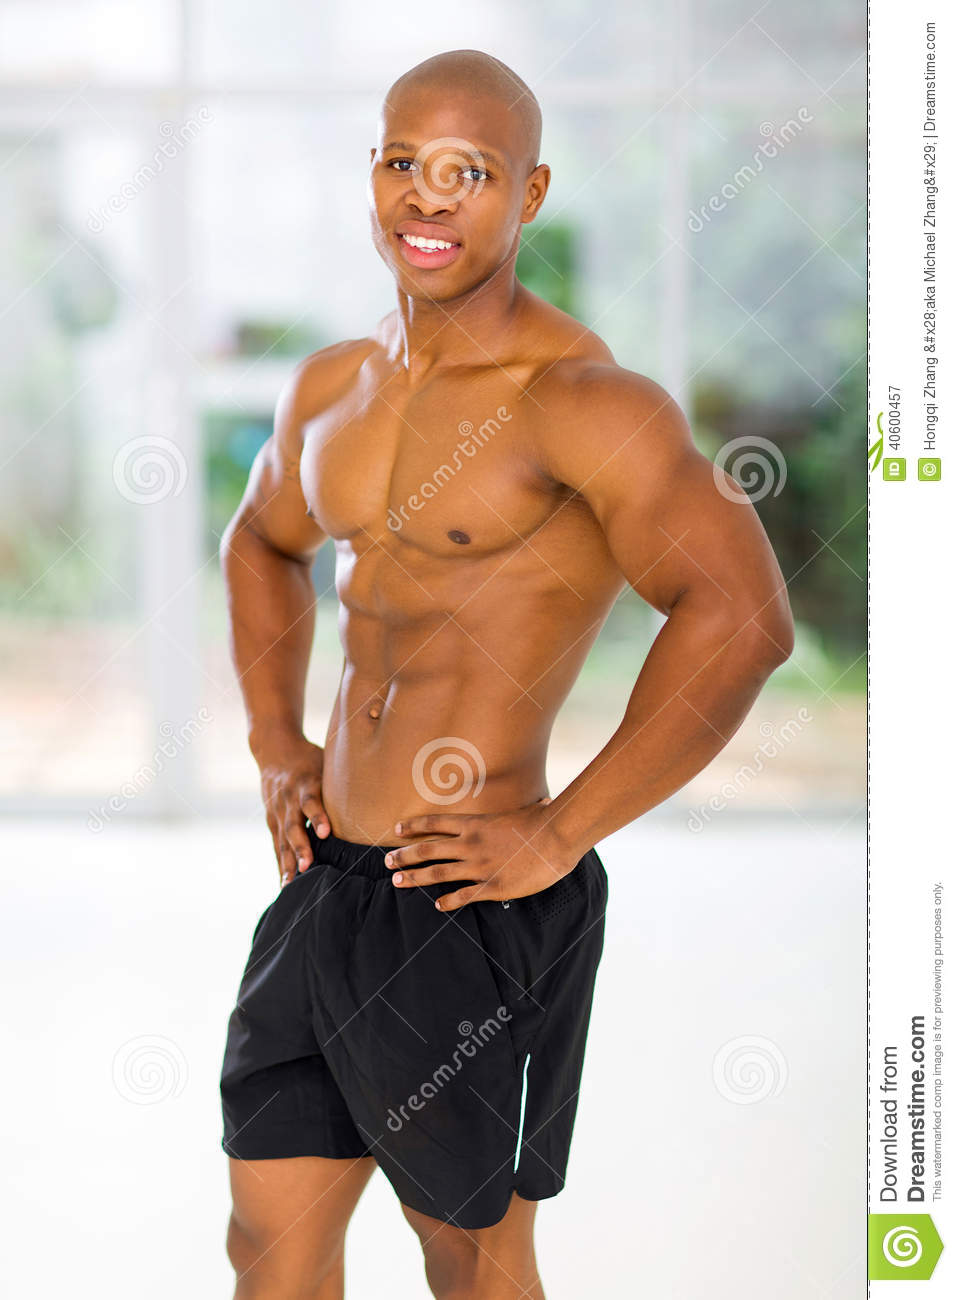 Fit african man